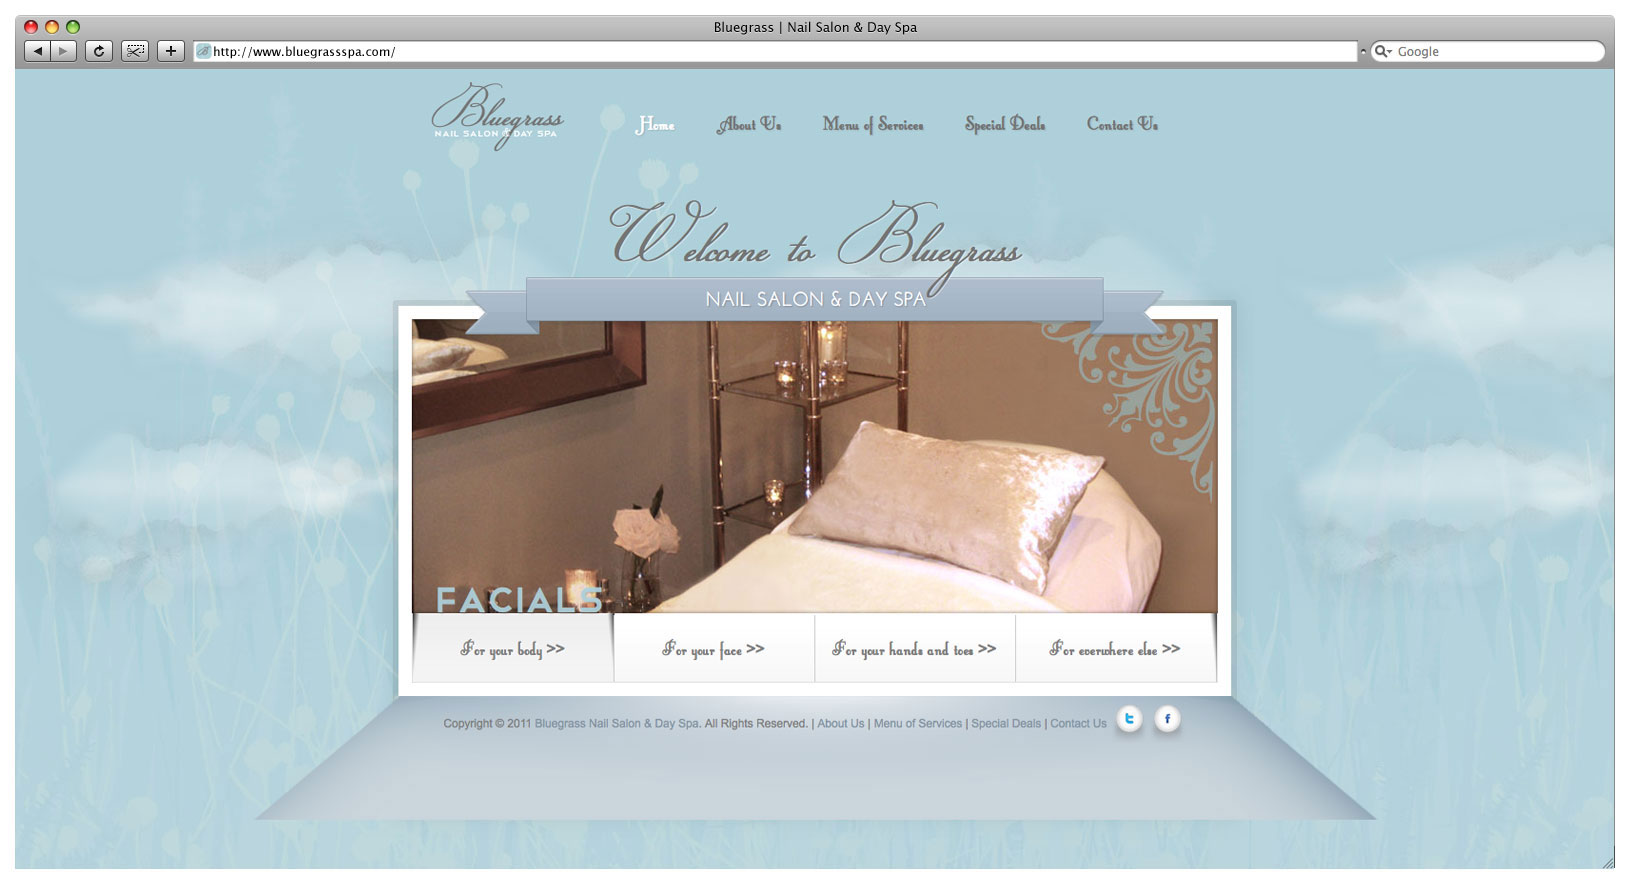 Bluegrass Day Spa & Nail Salon Website - Landing Page Slider 3